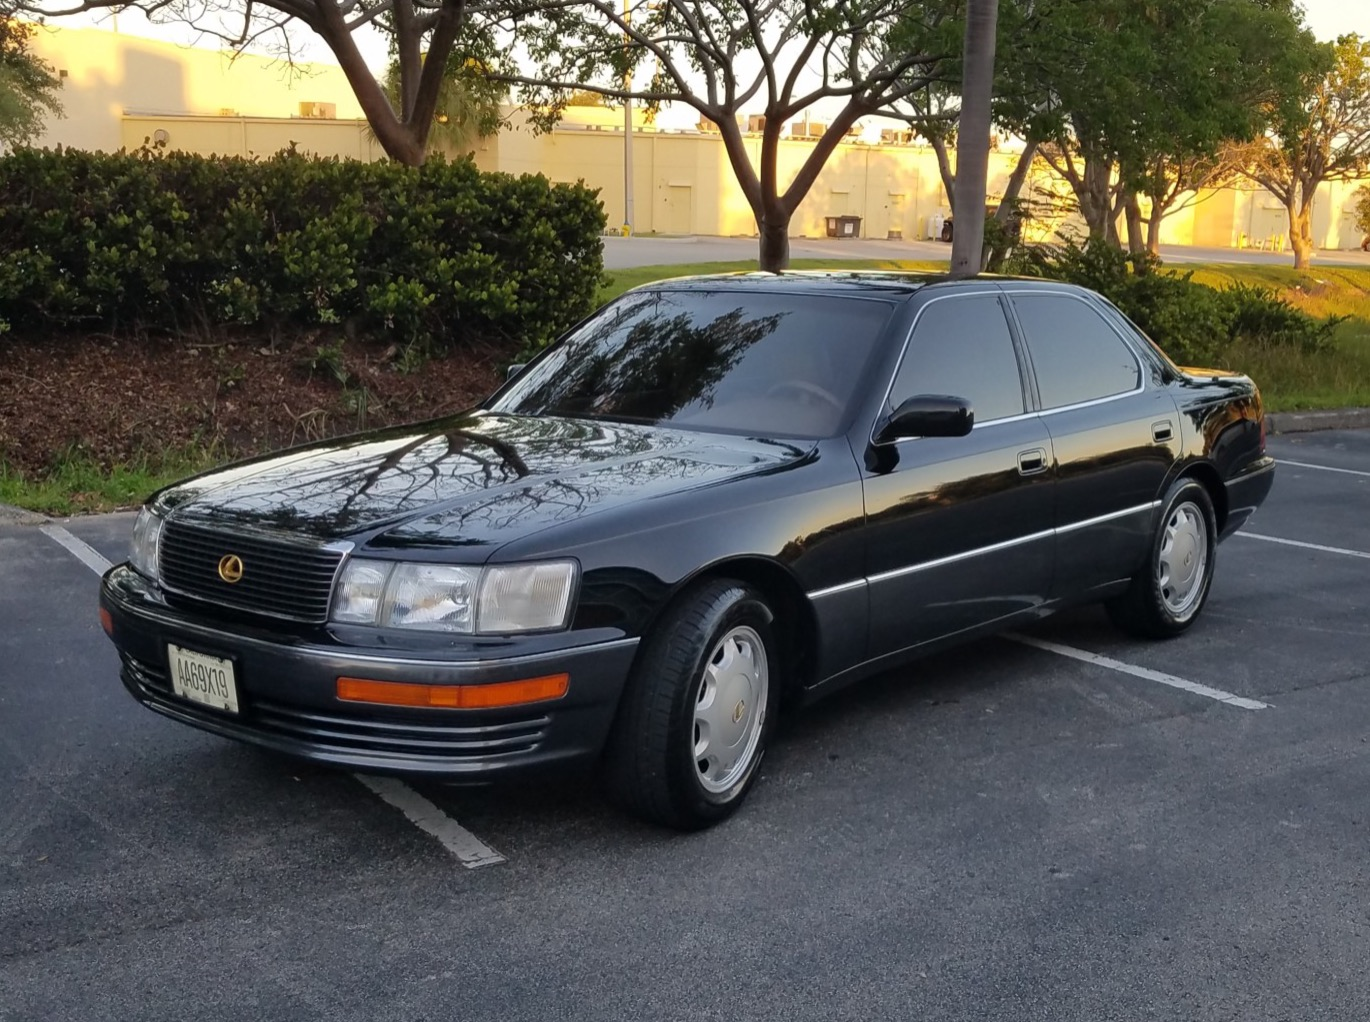 hight resolution of 19k mile 1993 lexus ls400 for sale on bat auctions sold for 17 000 on may 13 2019 lot 18 750 bring a trailer